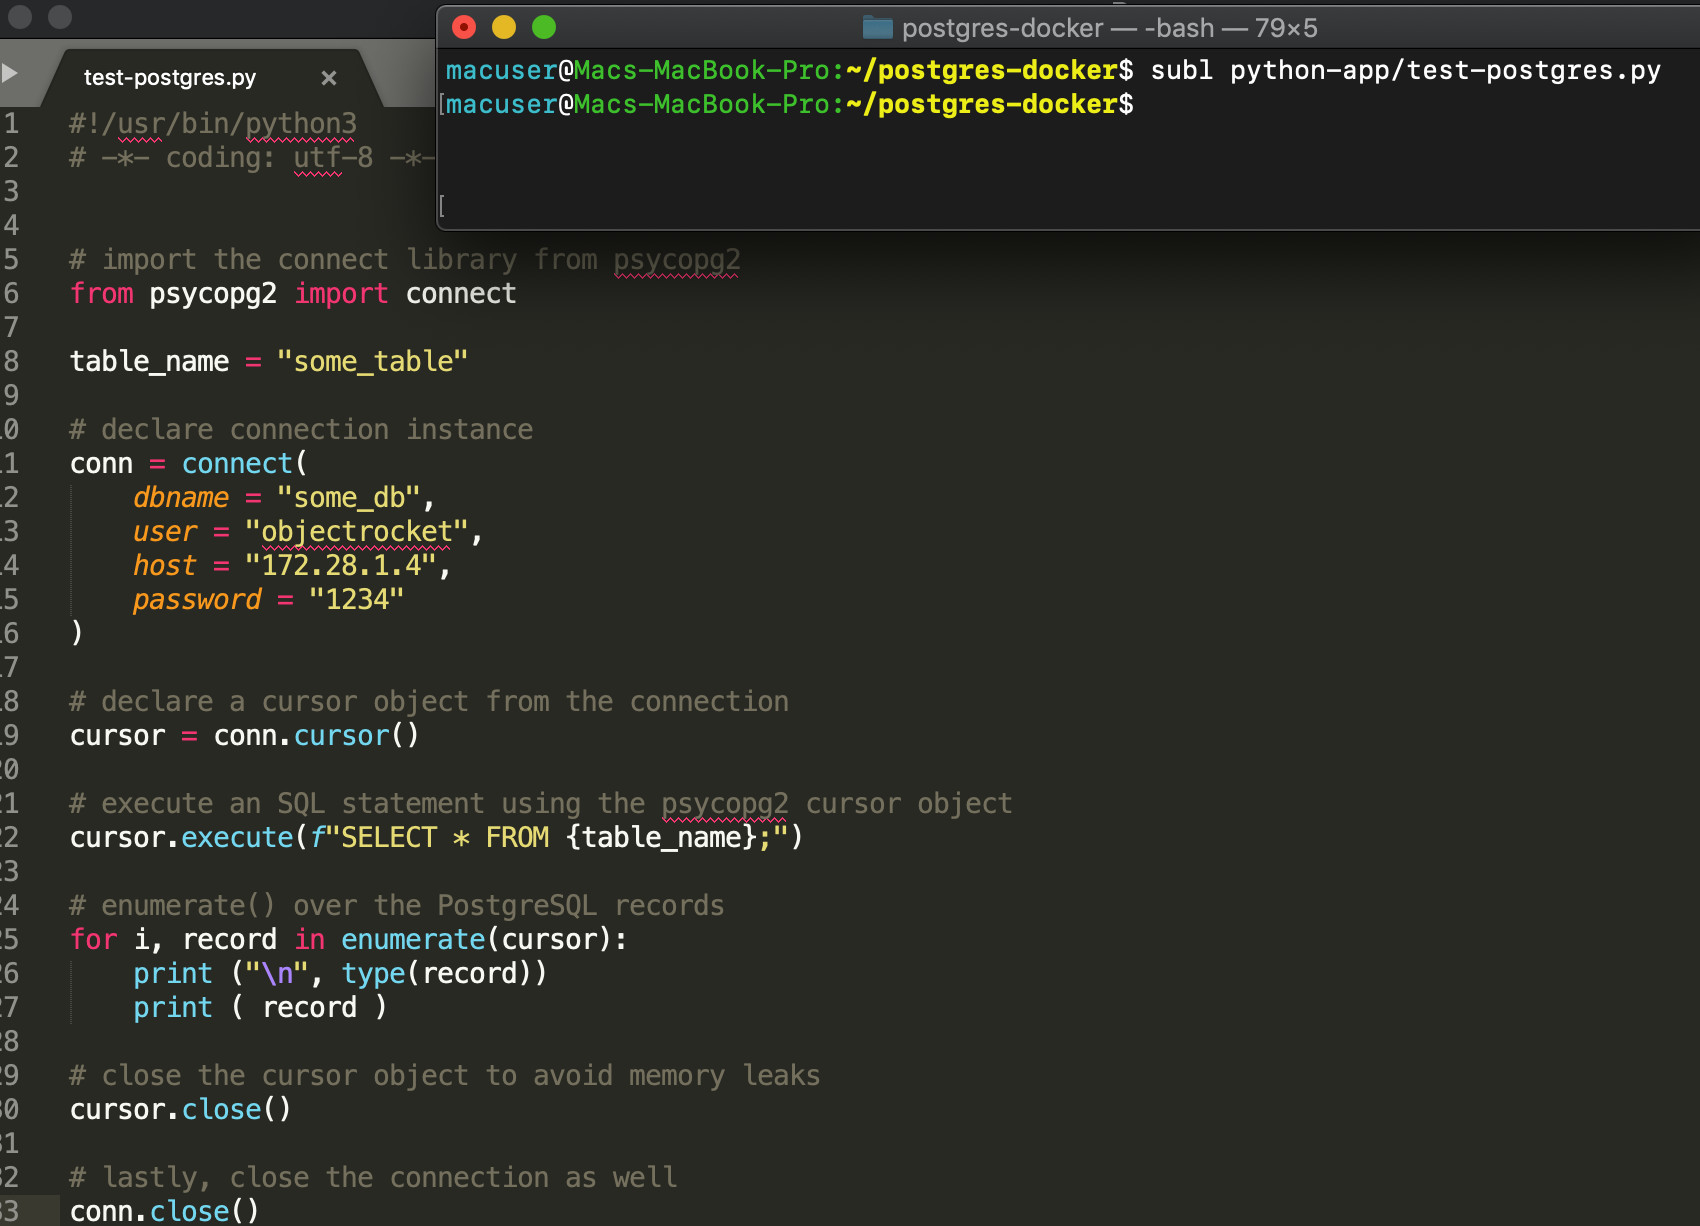 Screenshot of Sublime editing the psycopg2 Python script for PostgreSQL